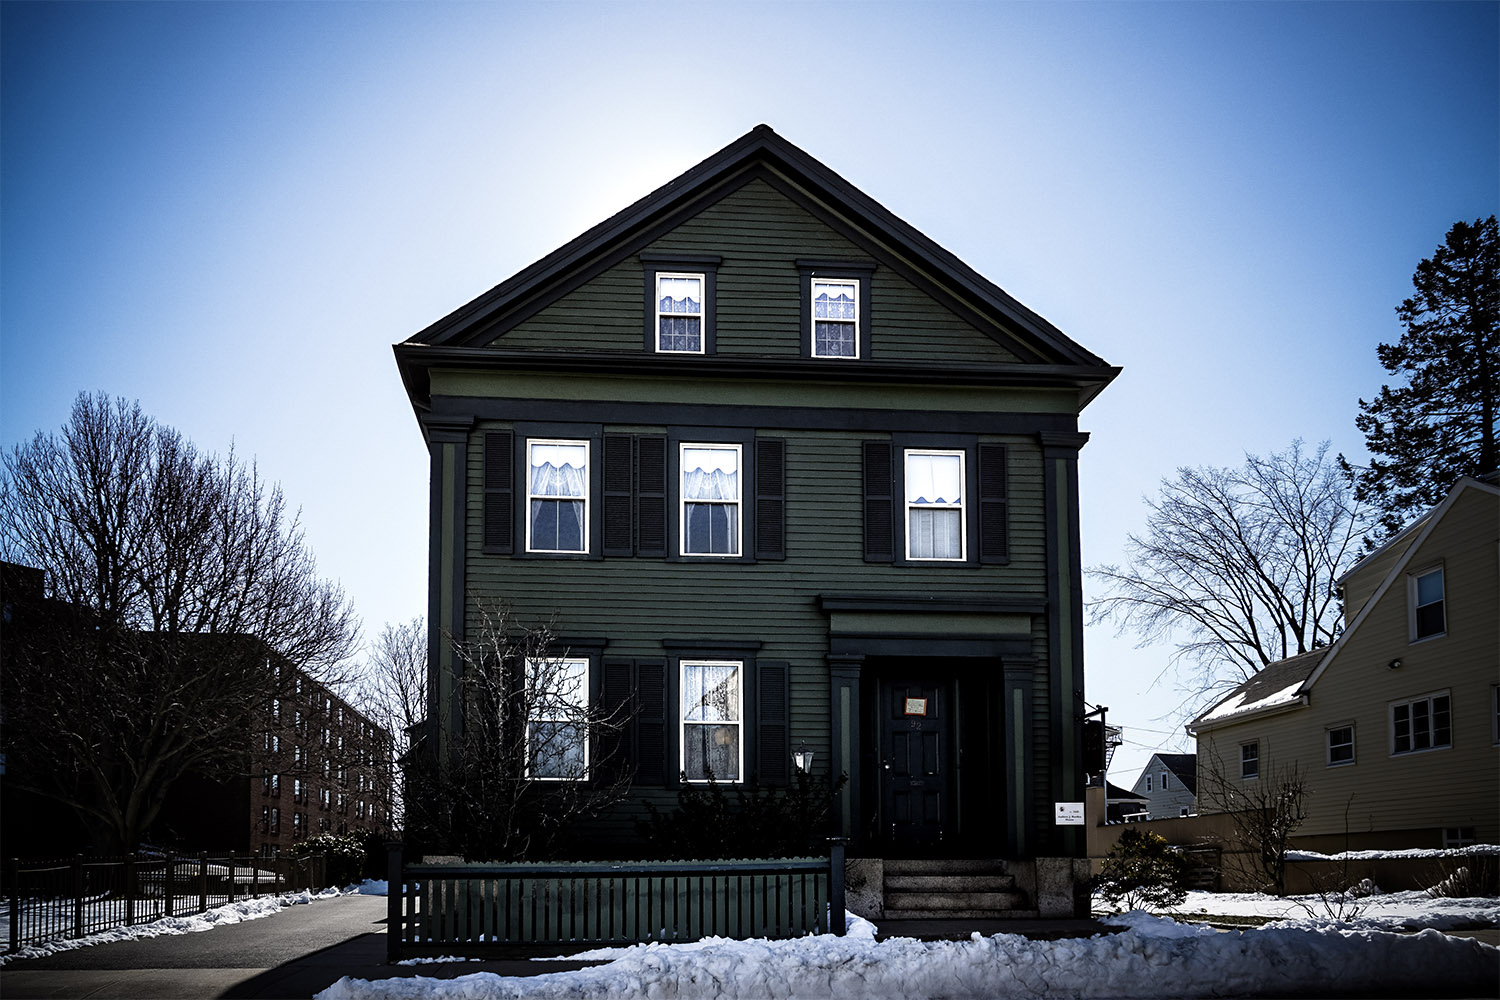 Haunted Lizzie Borden house.